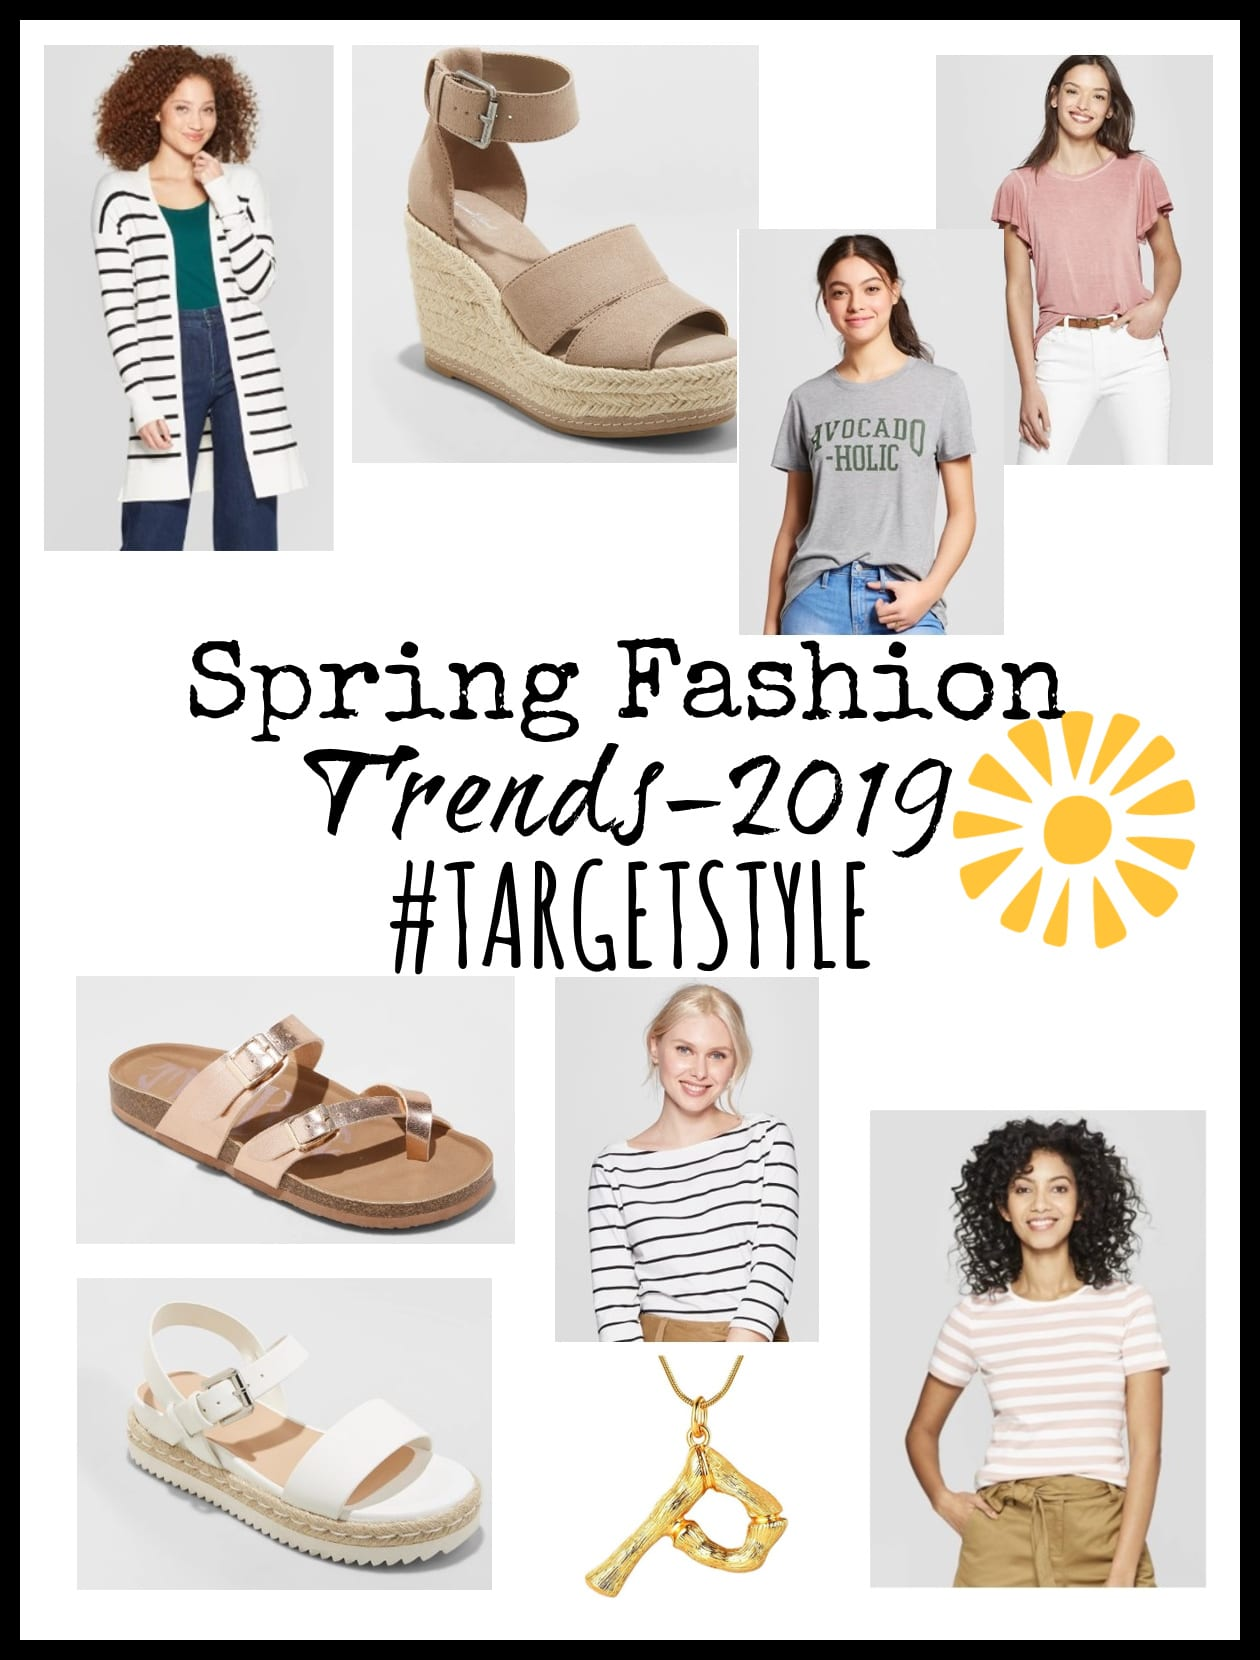 668988bc389b Spring Fashion Trends For 2019 ( TARGETSTYLE)…